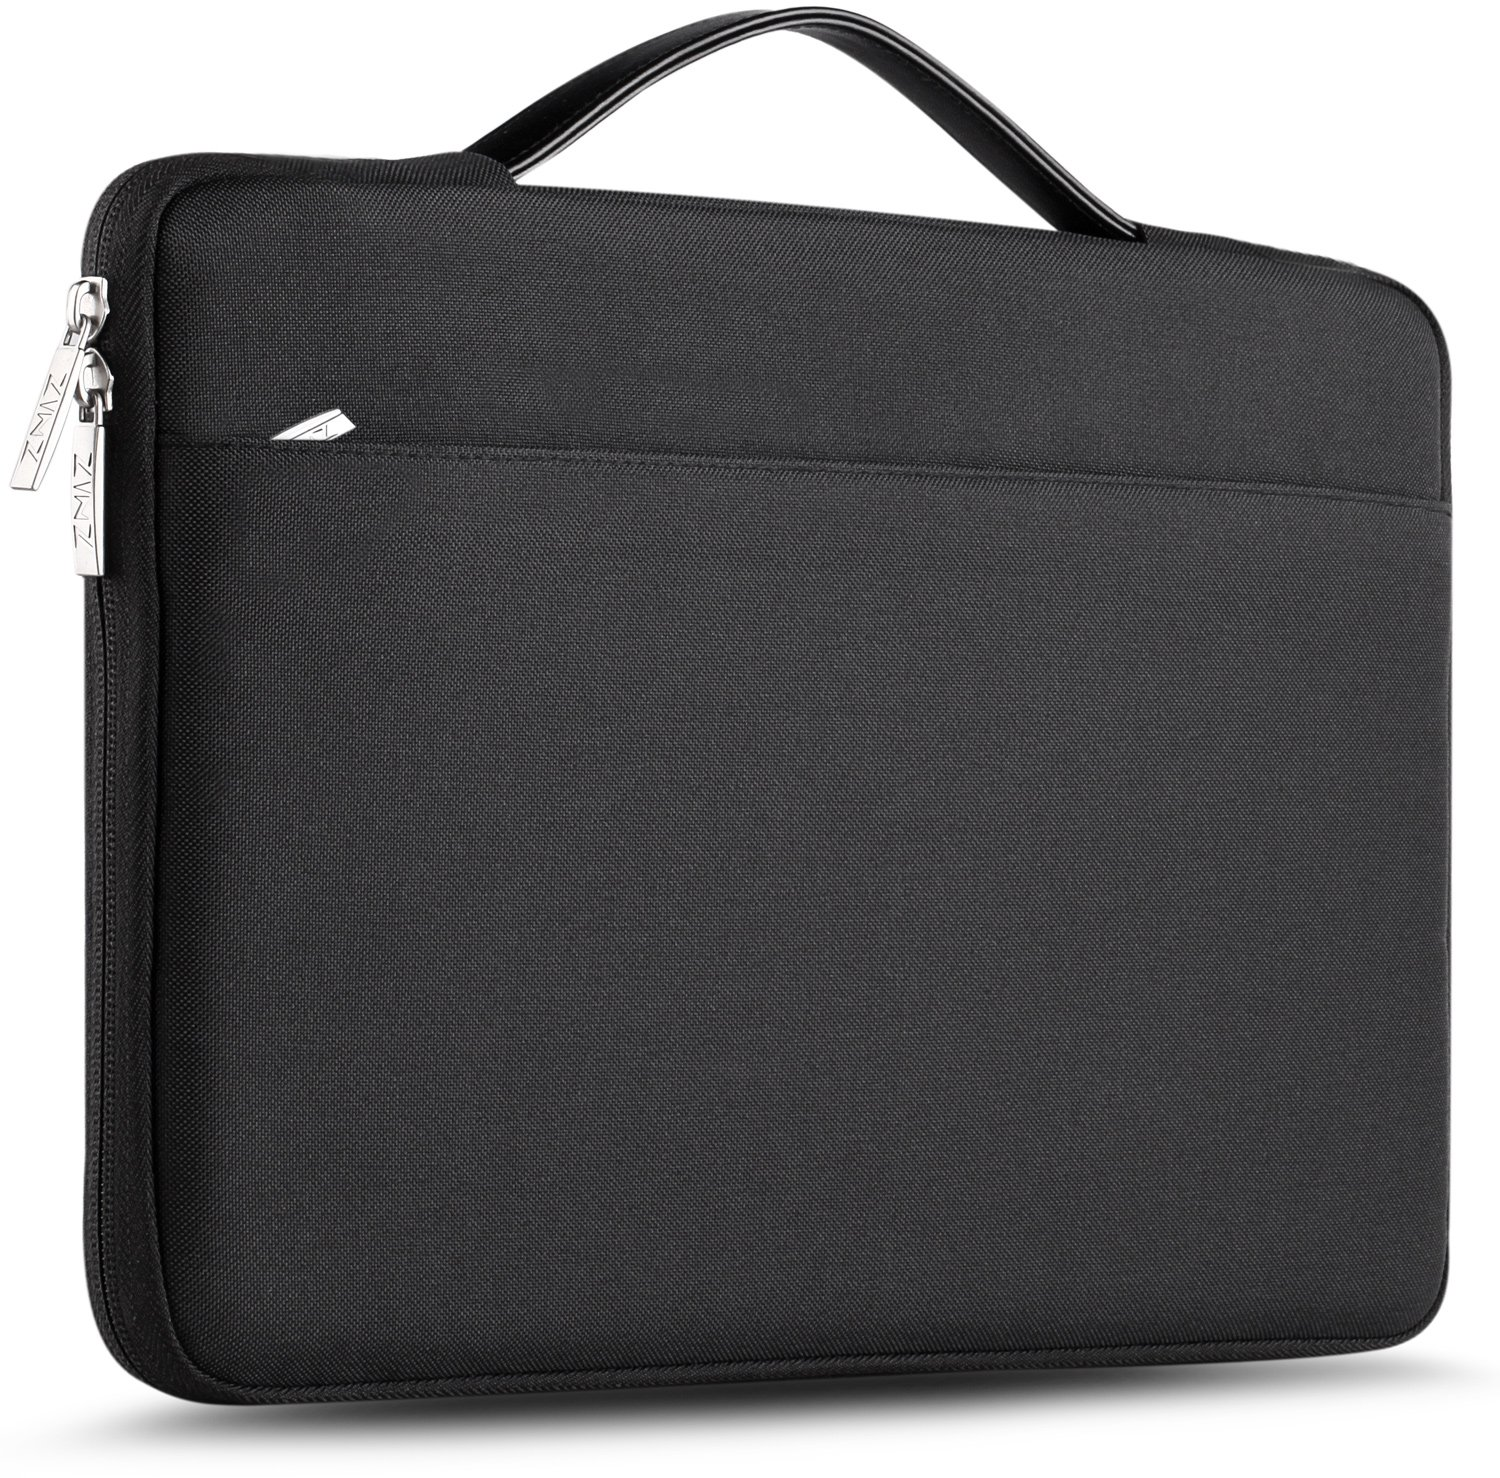 ZINZ Laptop Sleeve for 13 Inch 2017 New MacBook Pro | 13.3 Inch Acer/Ausu/Dell/HP/Toshiba/Lenovo Polyester Spill-Resistant Laptop Bag Case Cover -Black